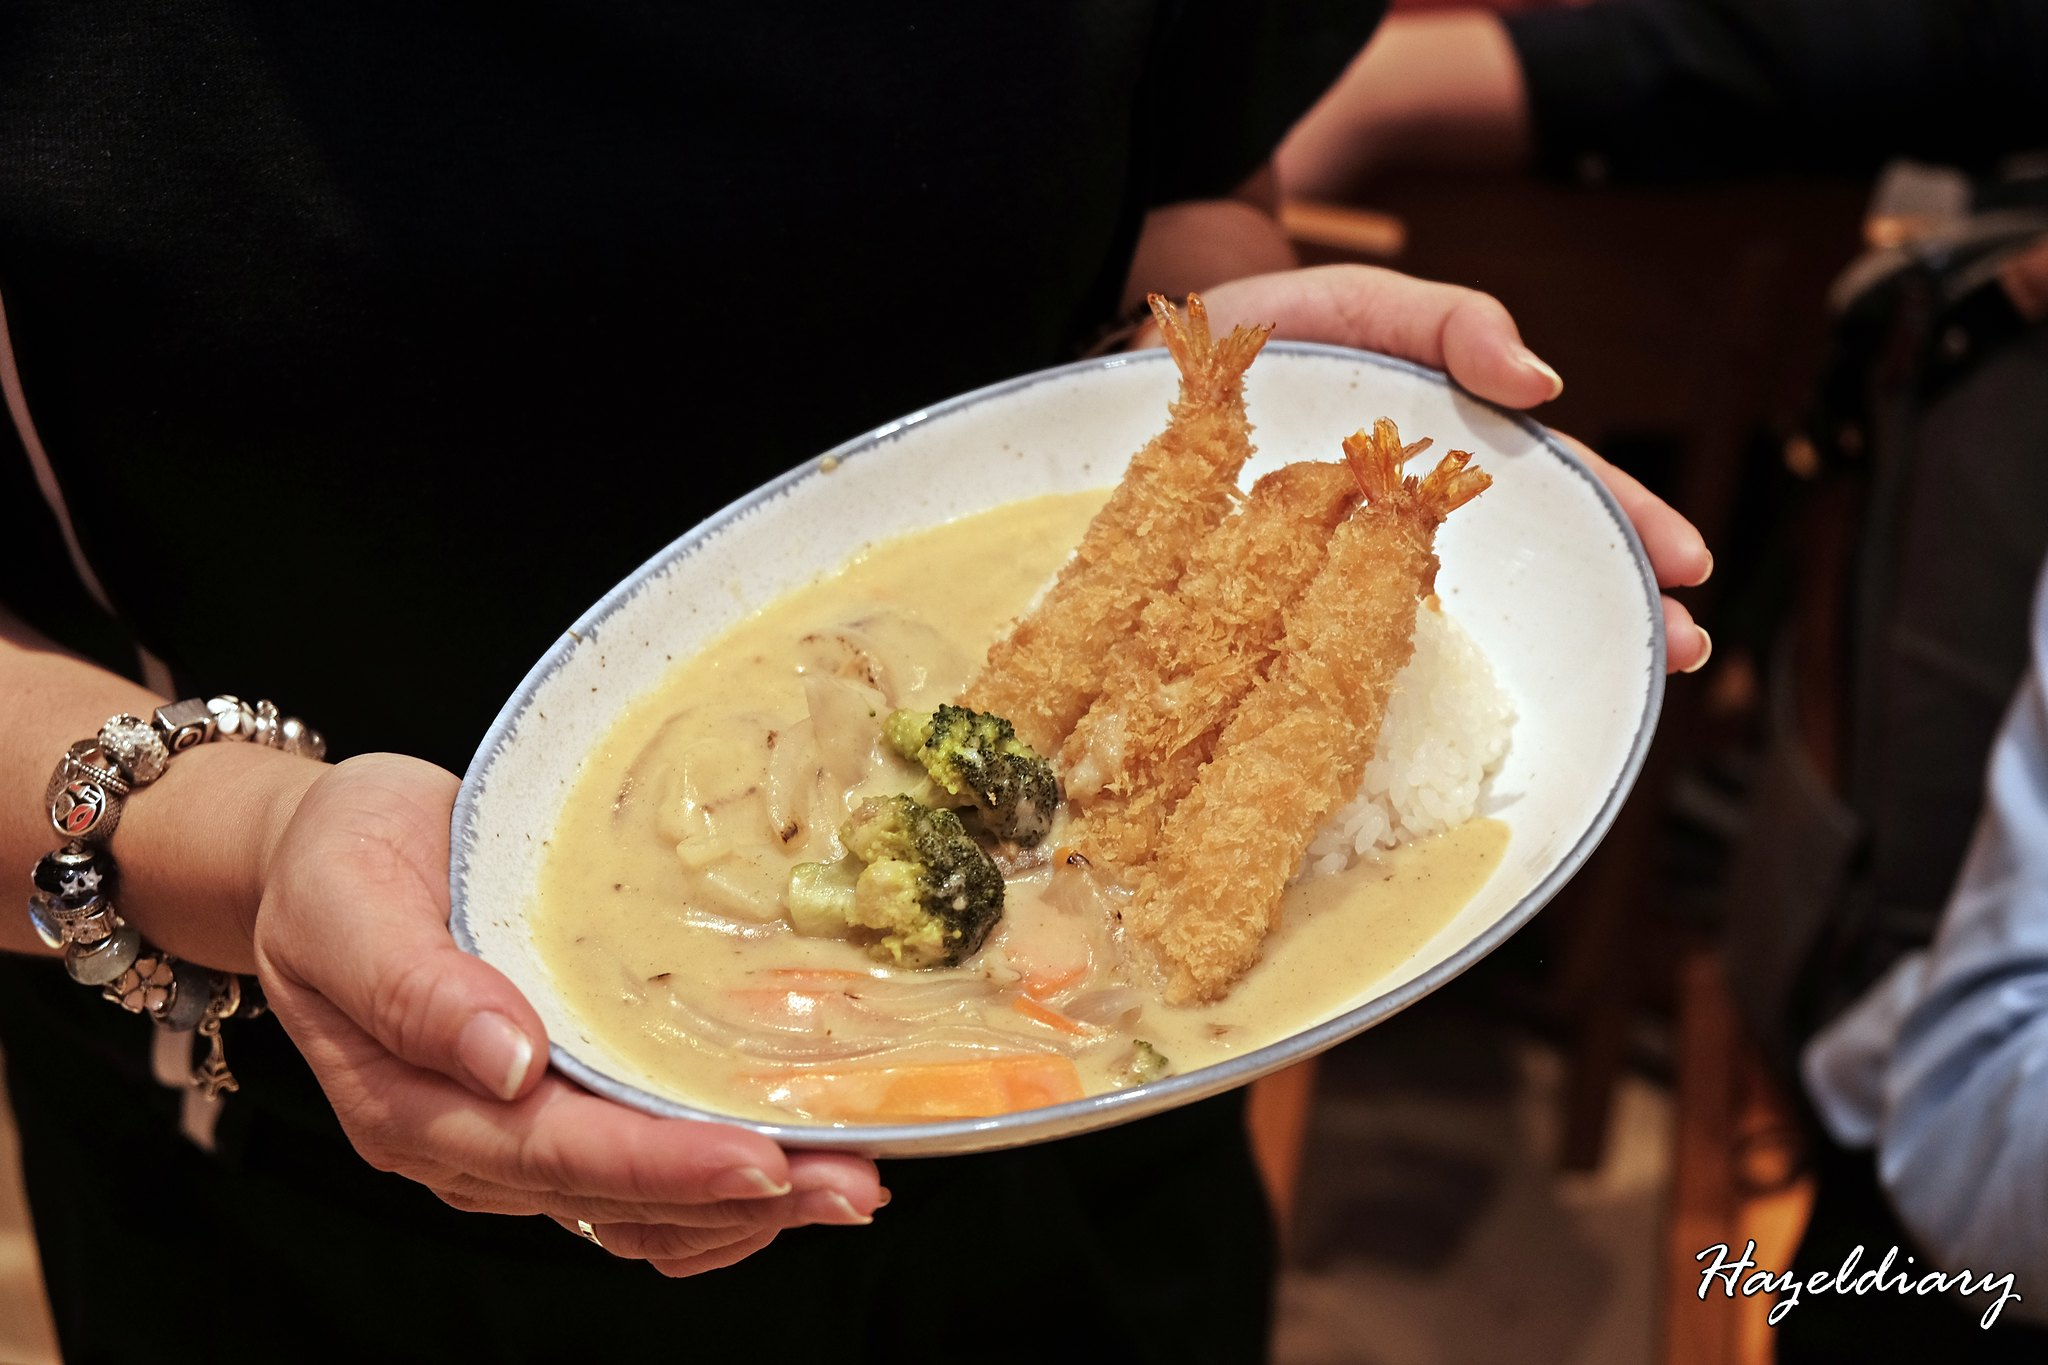 Hokkaido-Ya-Fried Ebi with White Curry